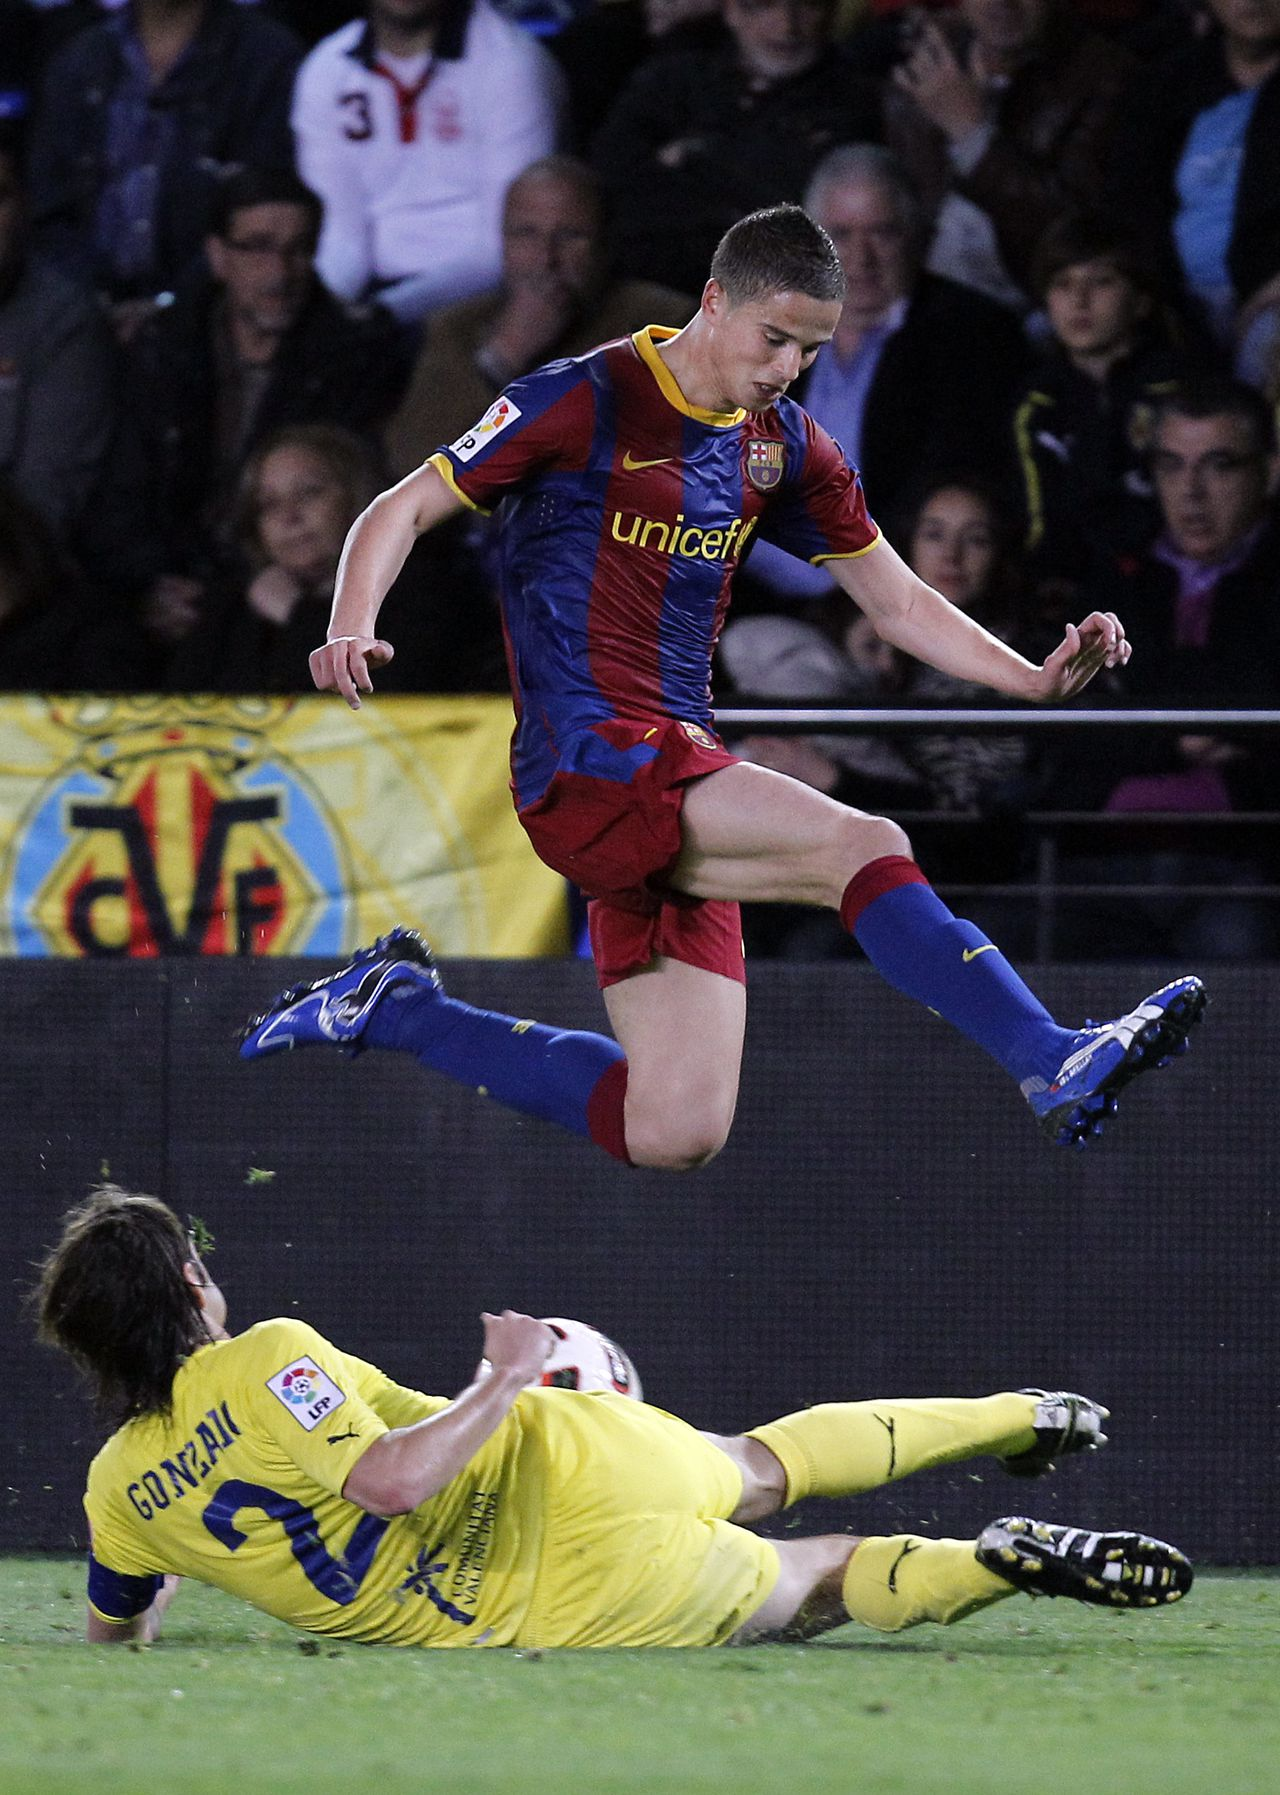 Barcelona's Ibrahim Afellay from Neetherlands, top, vies for the ball with Villarreal's Gonzalo Rodriguez, bottom, during their Spanish La Liga soccer match at Madrigal stadium in Villarreal, Saturday, April 2, 2011. (AP Photo/ Alberto Saiz)